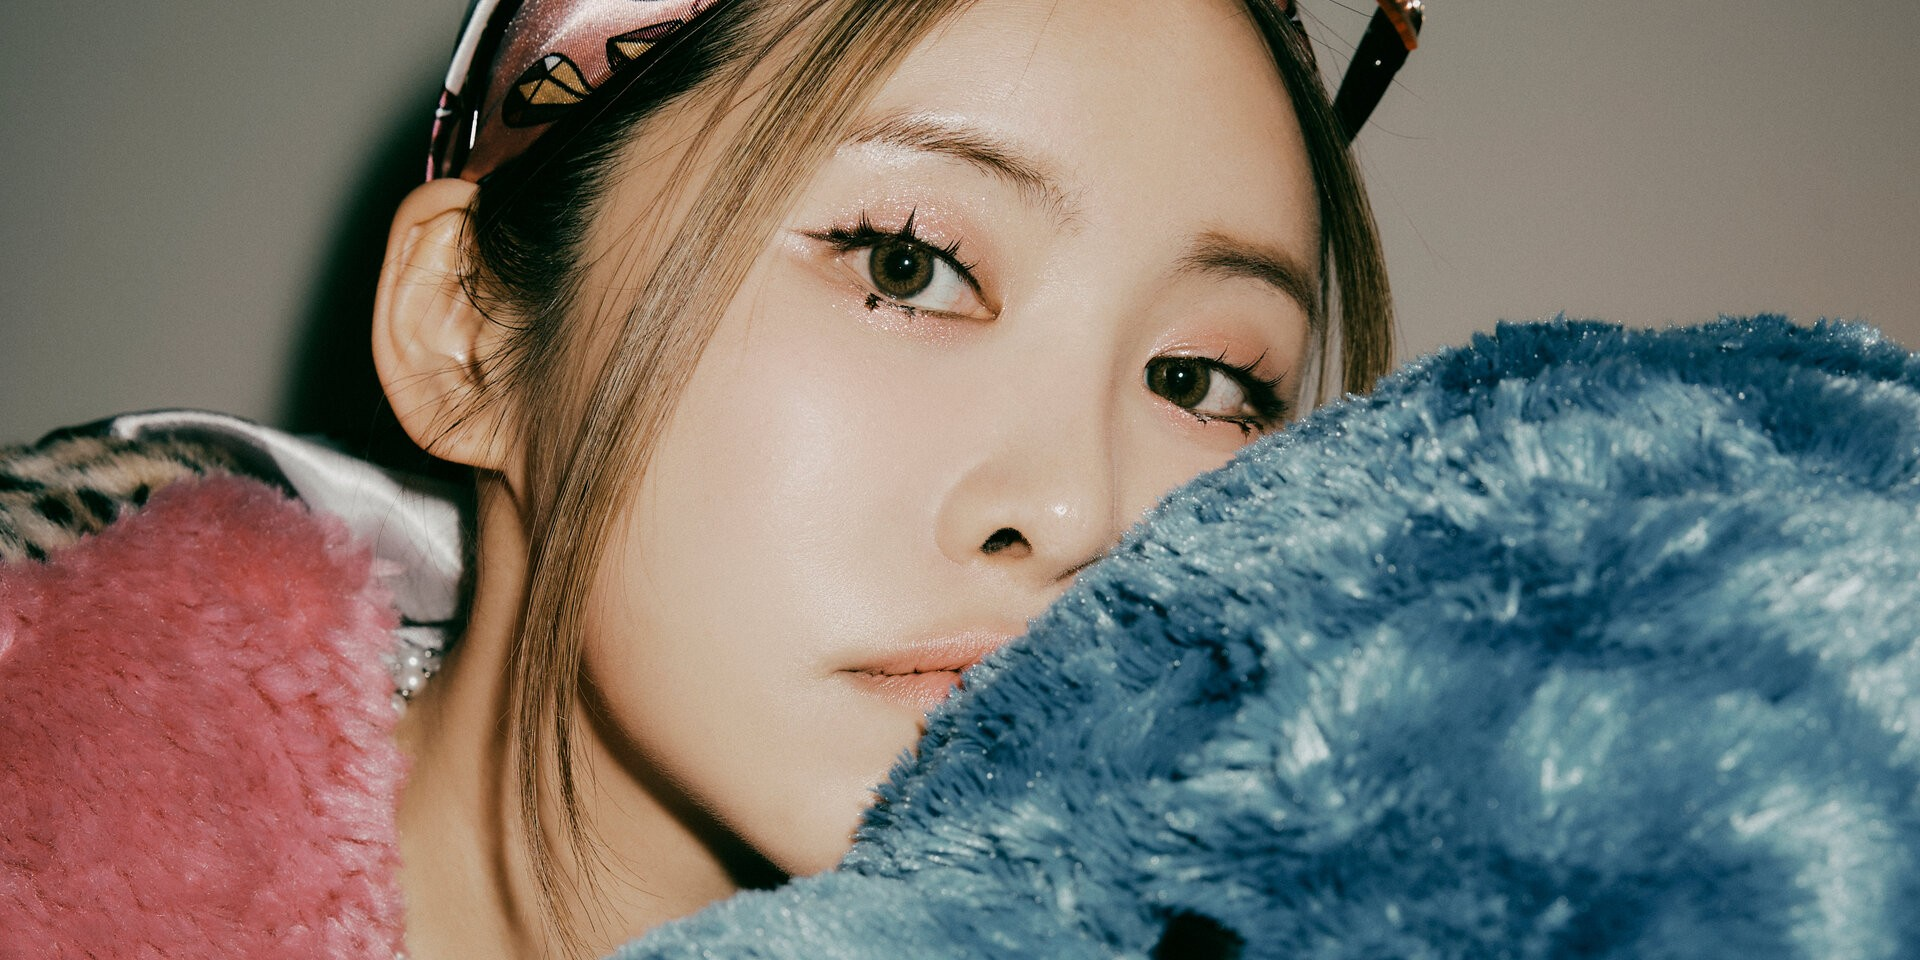 Asia Spotlight: Korean singer-songwriter SURAN on creating a fantasy world through music and starting her own record label